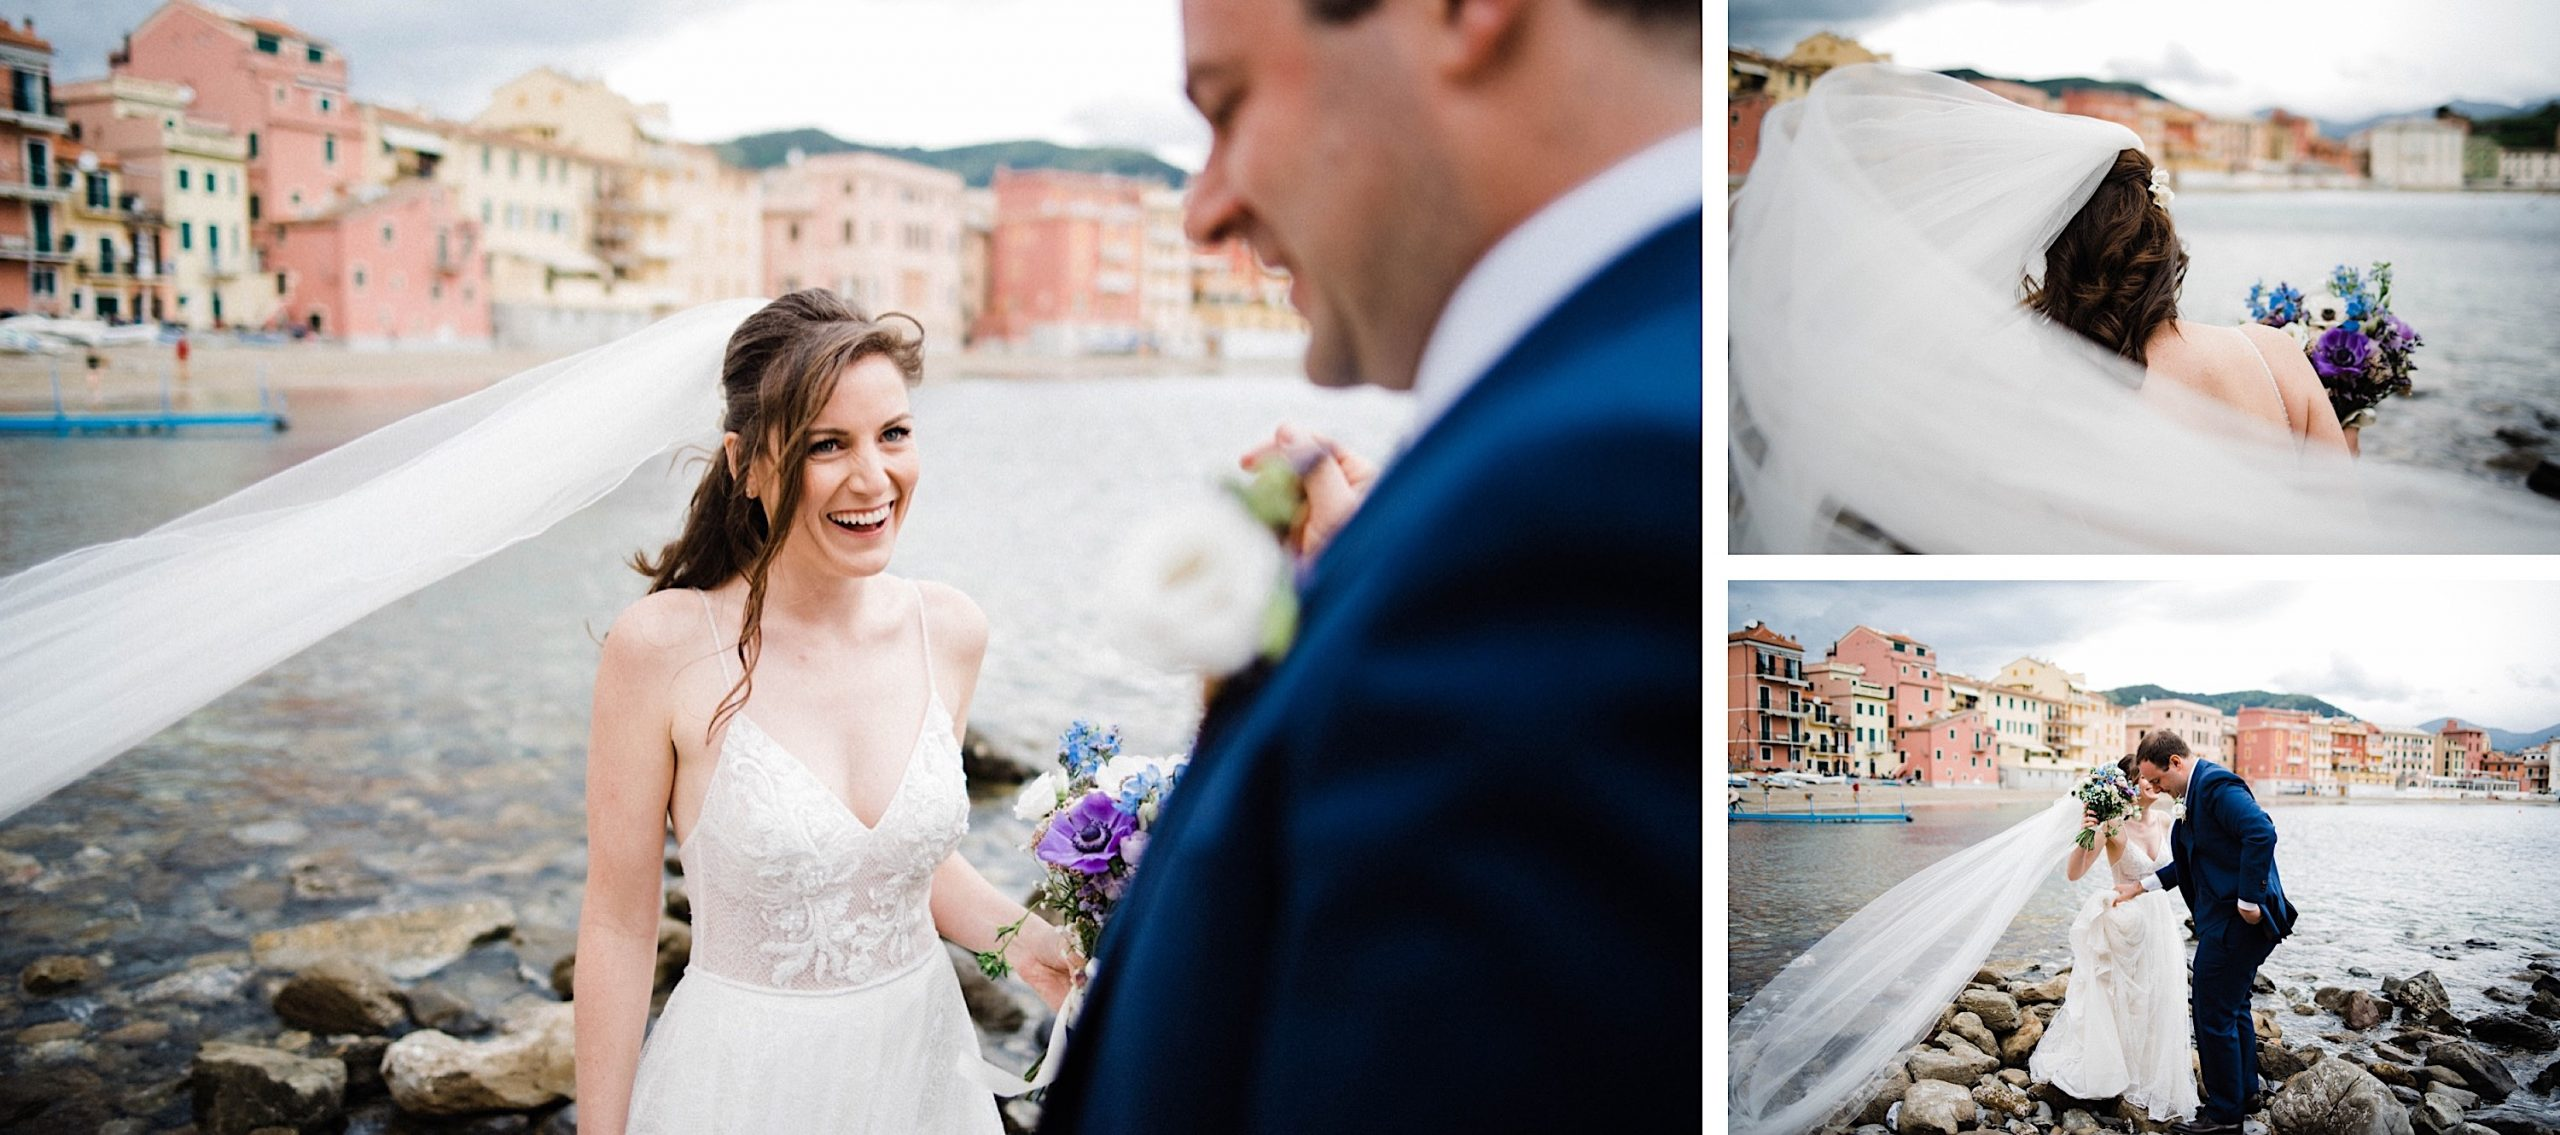 A three-photo collage of Natural Destination Wedding Photography of a bride & groom laughing as they walk over the rocks at the Baia di Silenzio.